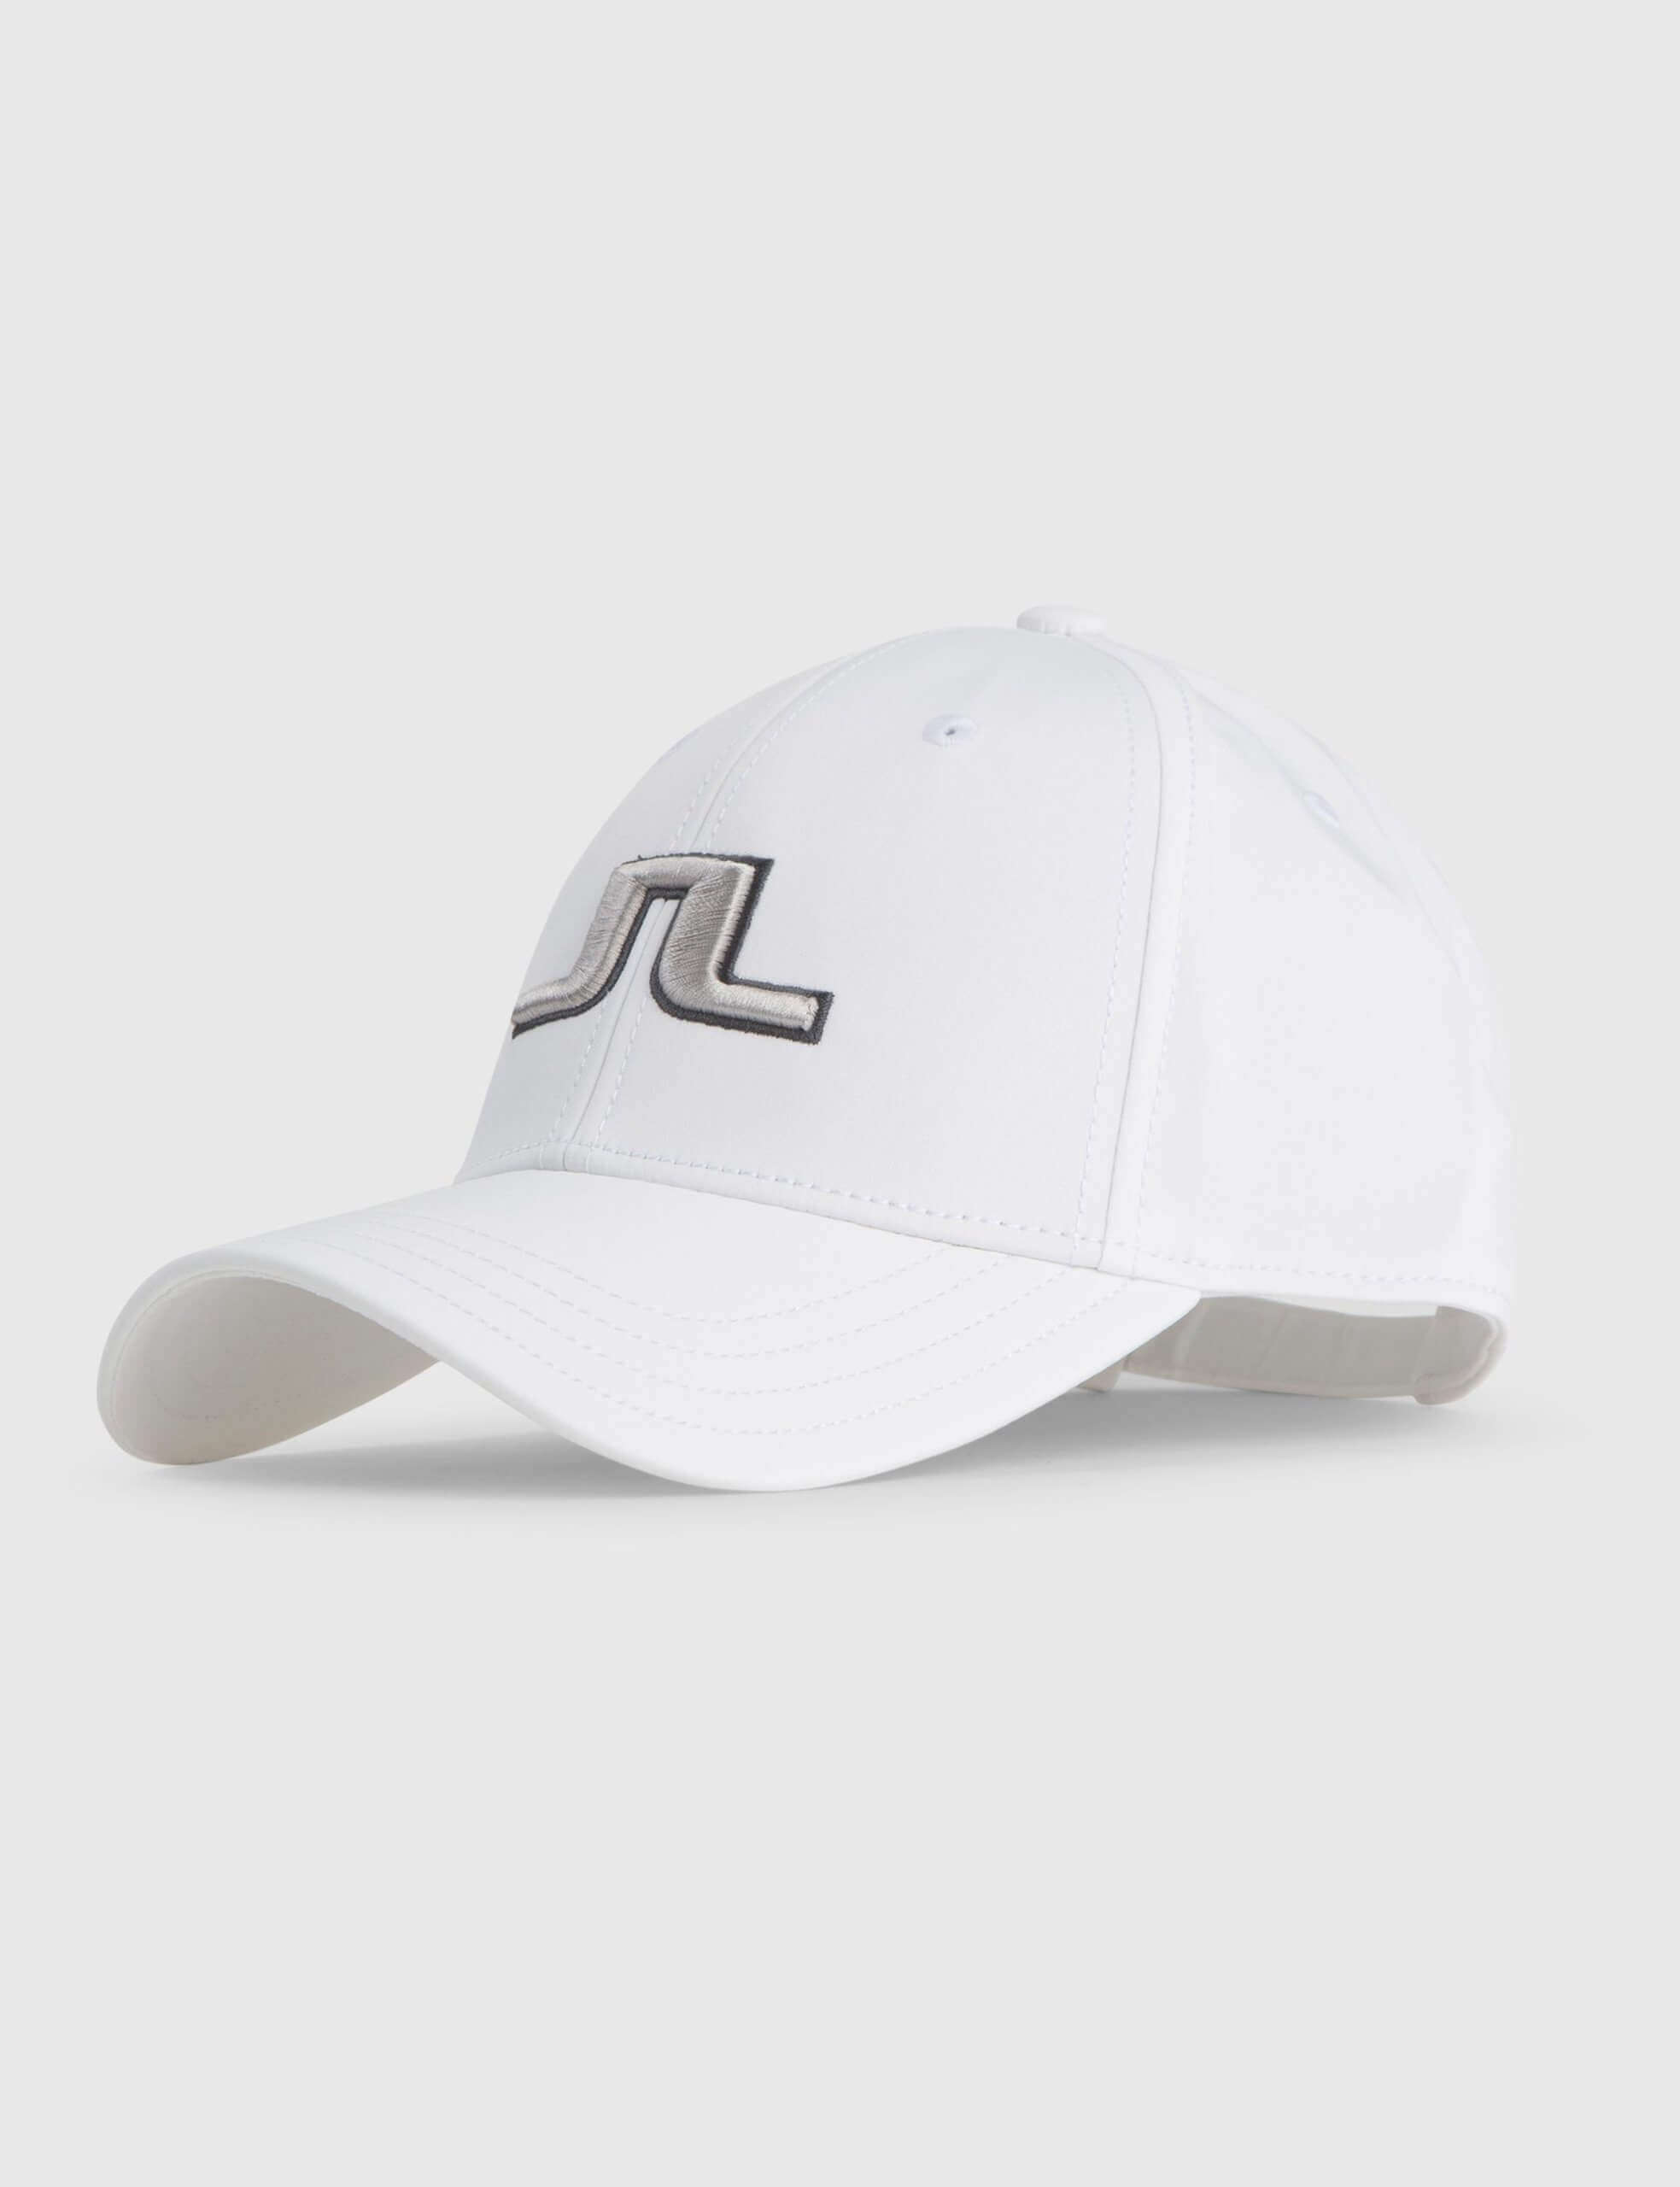 J.Lindeberg - ANGUS Tech Stretch Cap in white